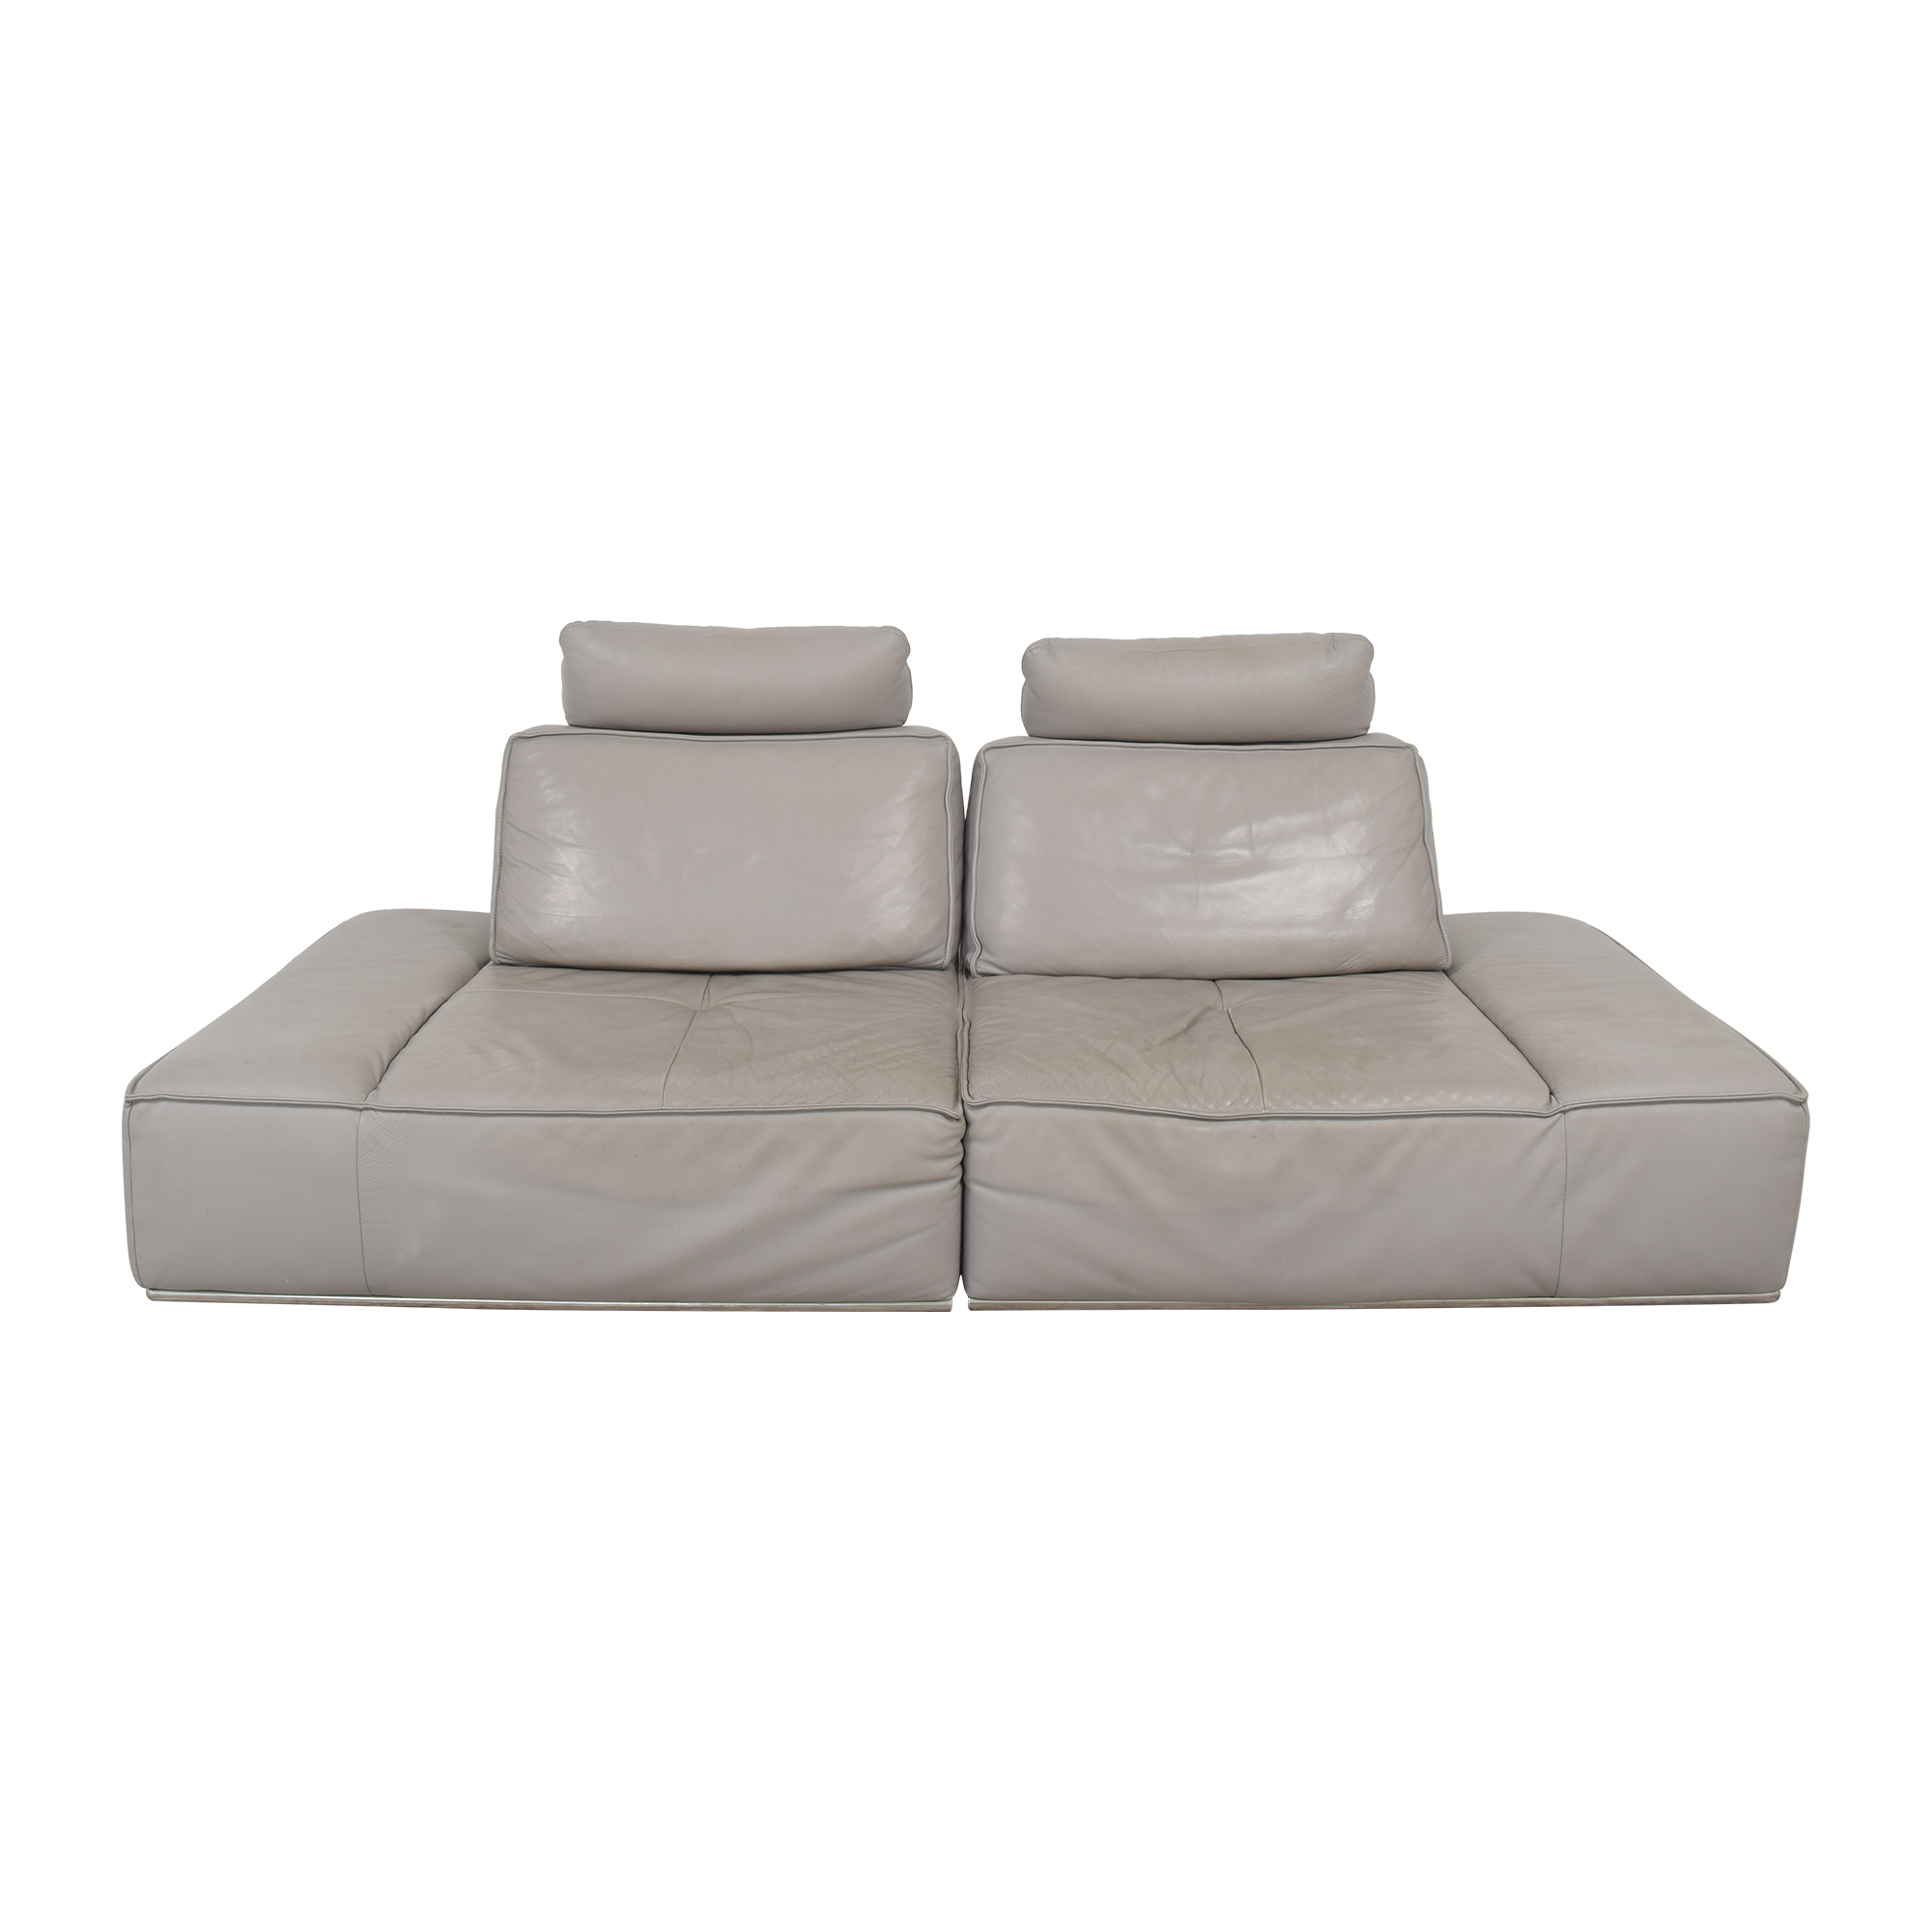 Sit Down New York Sit Down New York Convertible Sectional Sofa Sofas